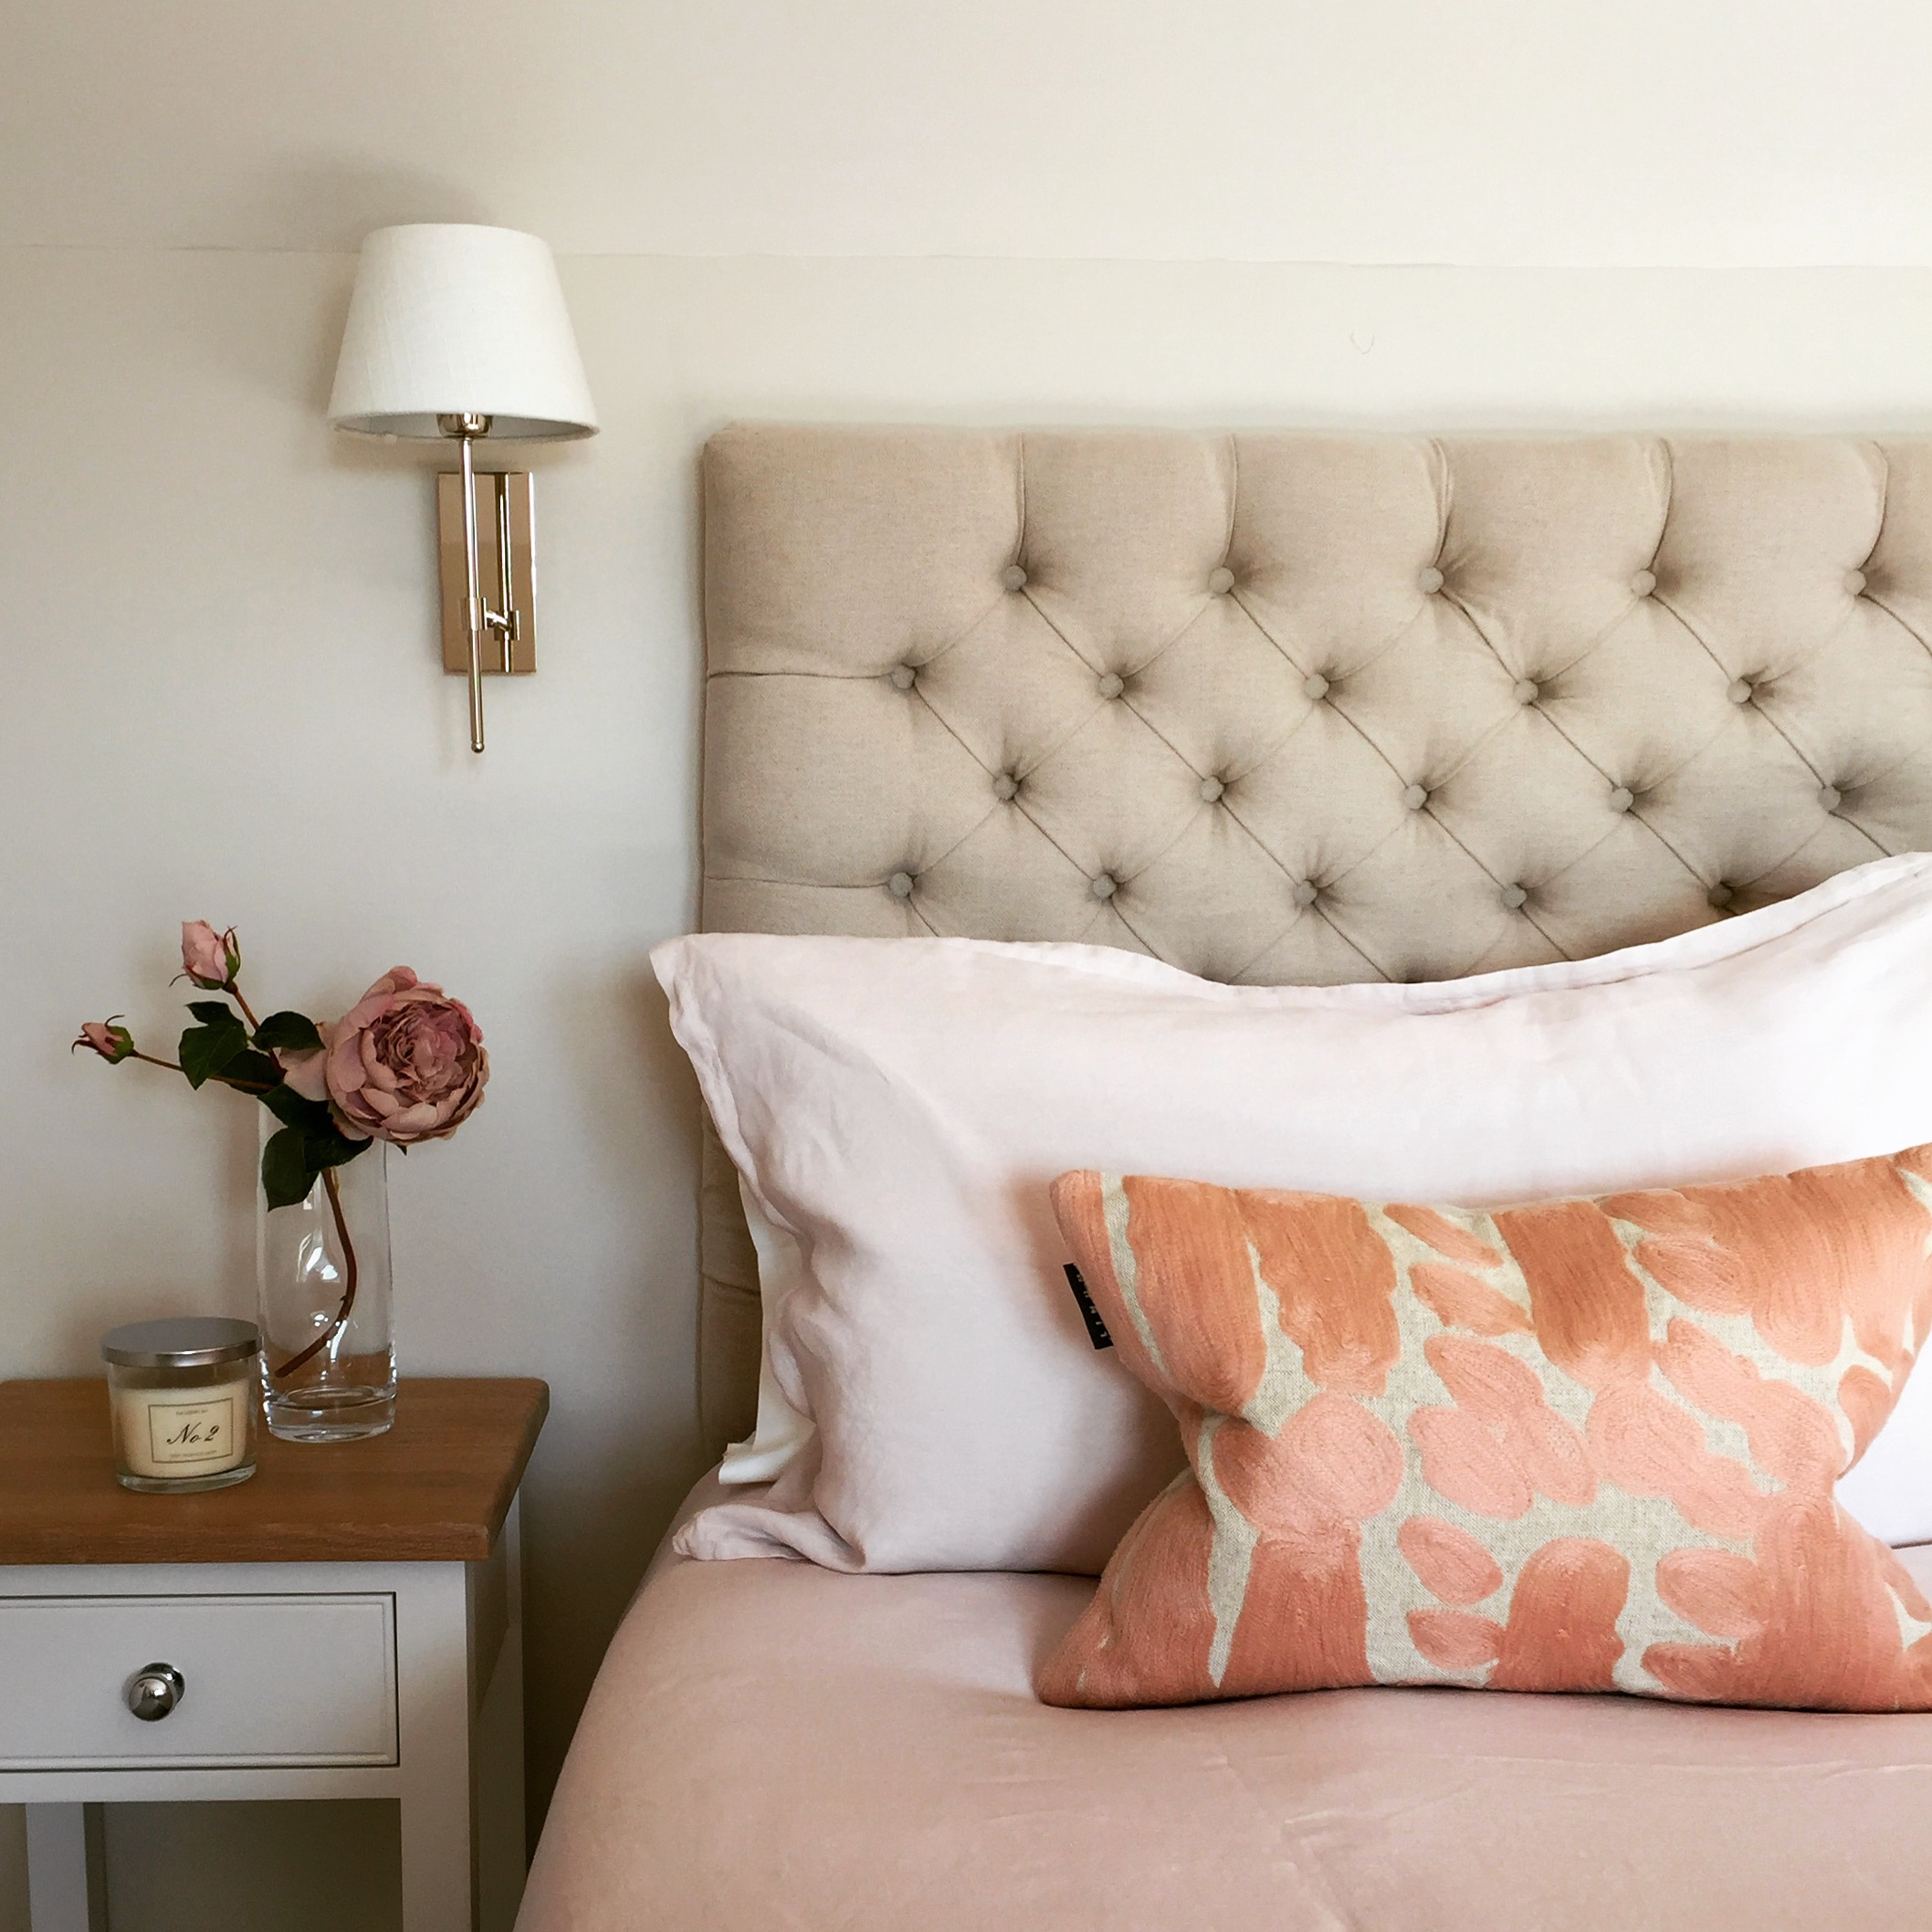 Blush Bedroom in Lahinch